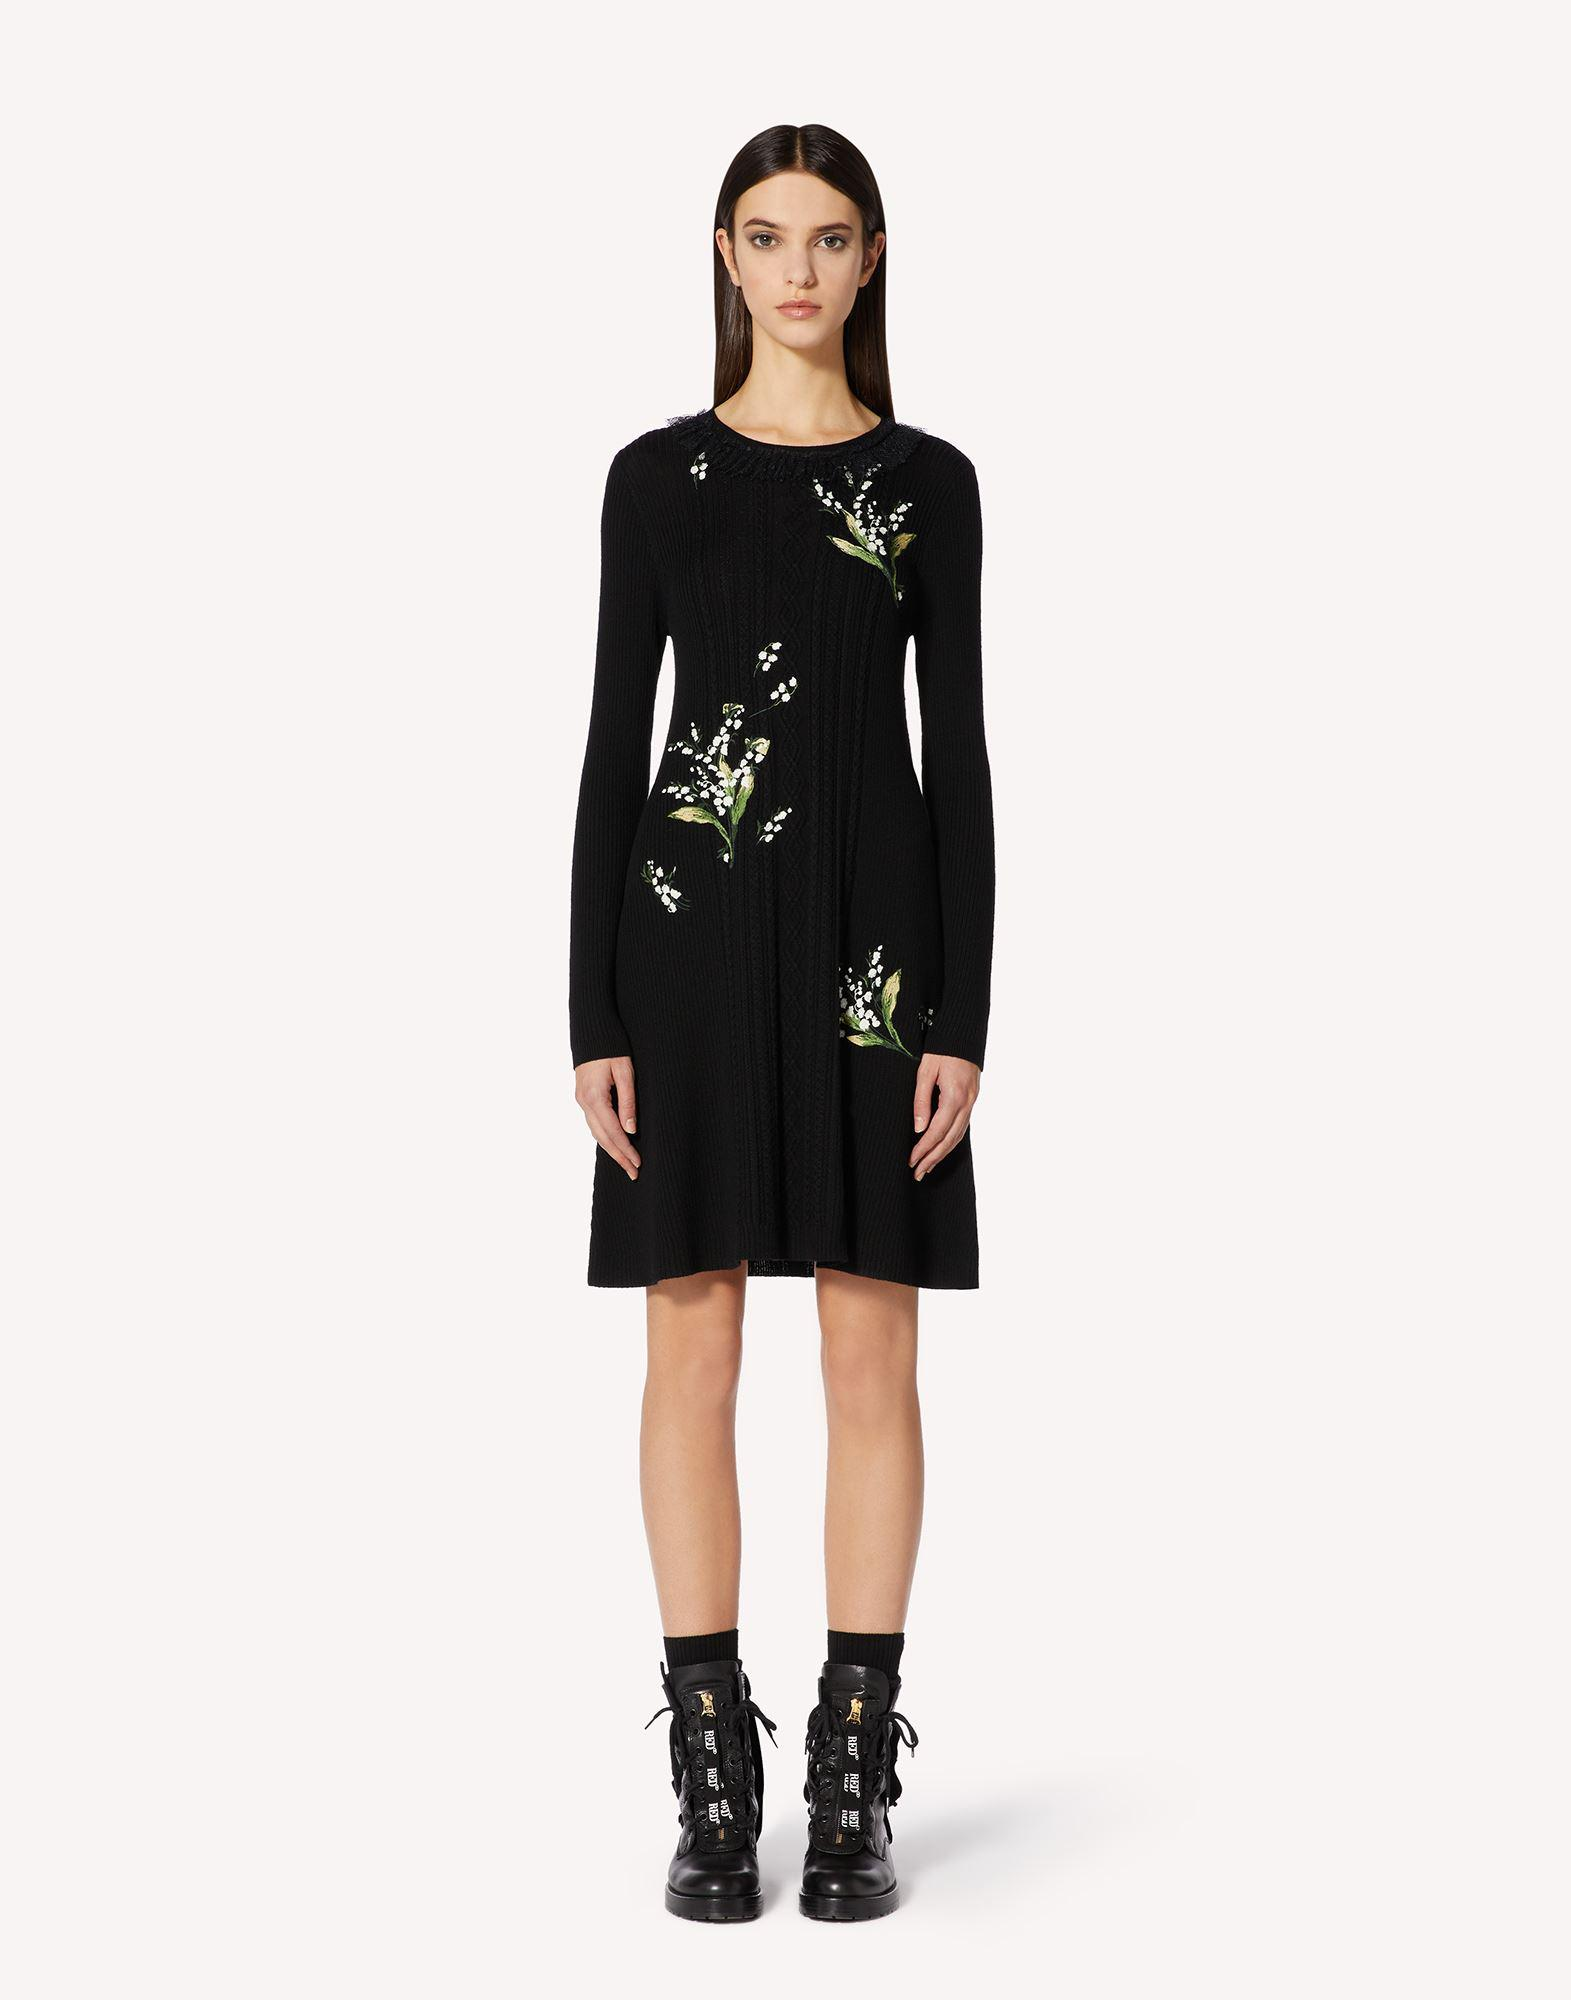 MAY LILY EMBROIDERED WOOL KNIT DRESS